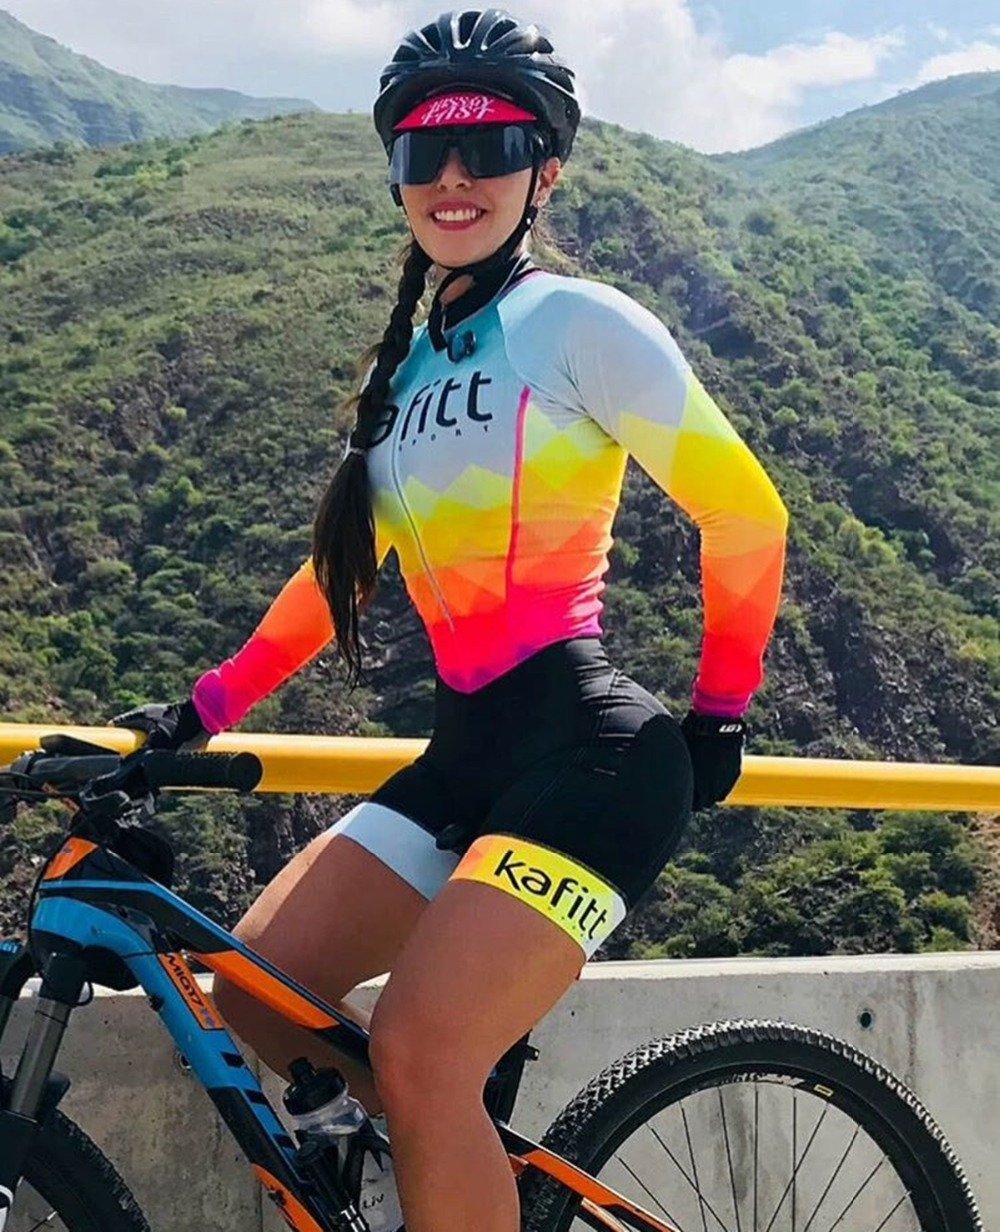 2019 Pro Team Triathlon Suit Women's Cycling Long Sleeve Jersey Skinsuit Jumpsuit Maillot Cycling Ropa Ciclismo Set Gel